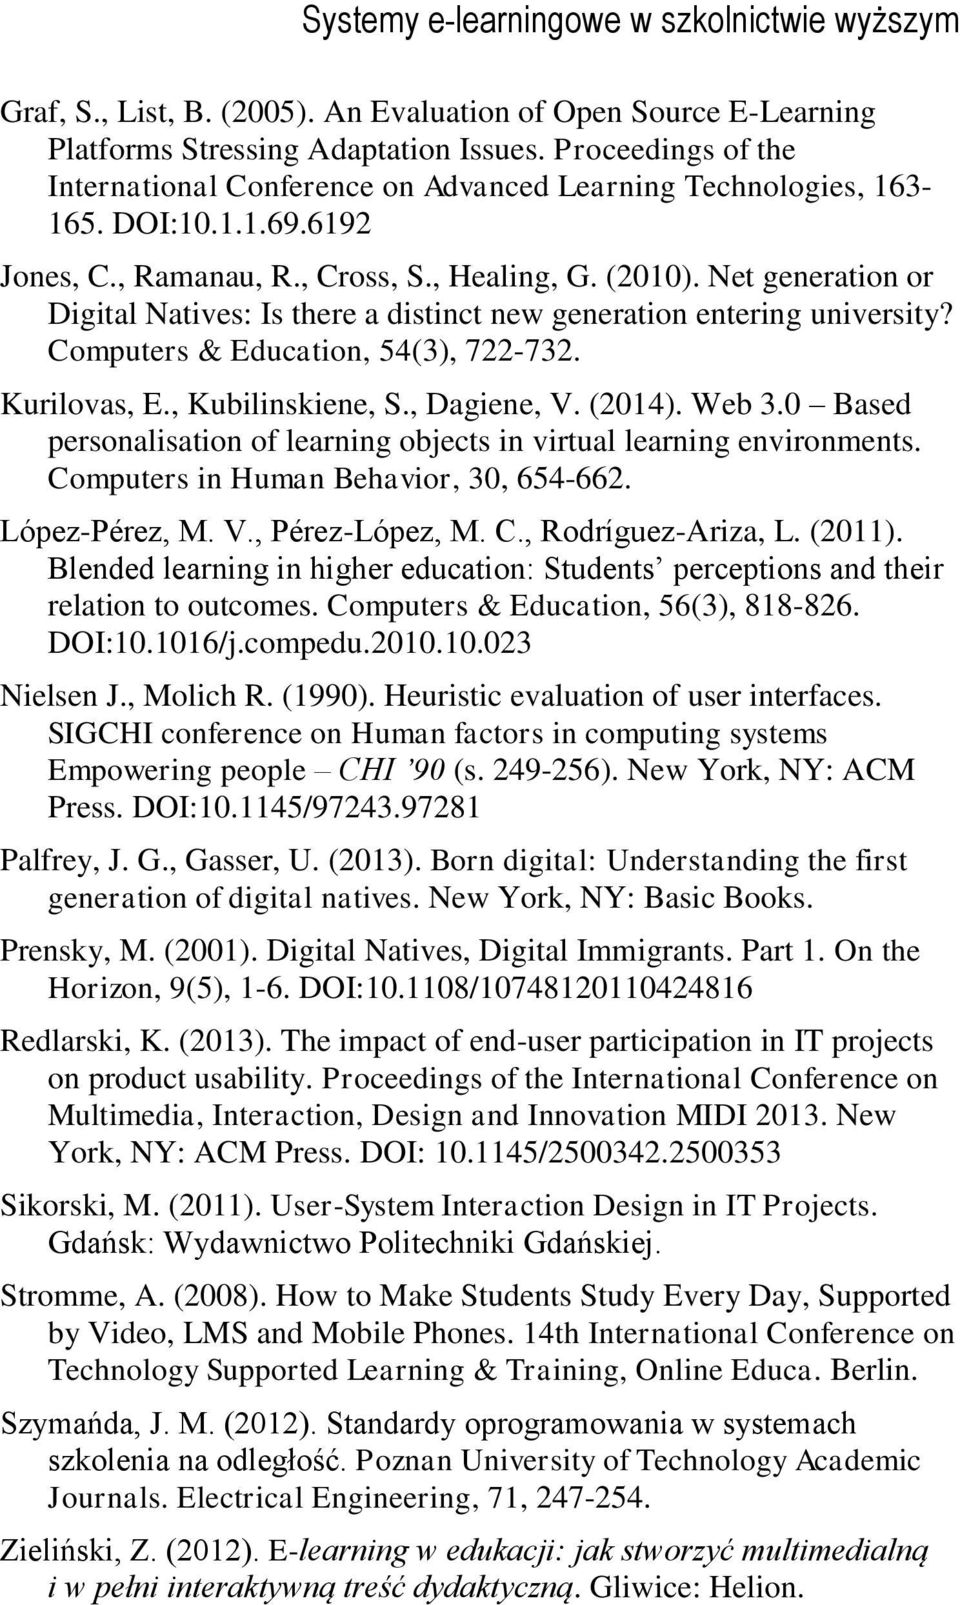 Net generation or Digital Natives: Is there a distinct new generation entering university? Computers & Education, 54(3), 722-732. Kurilovas, E., Kubilinskiene, S., Dagiene, V. (2014). Web 3.